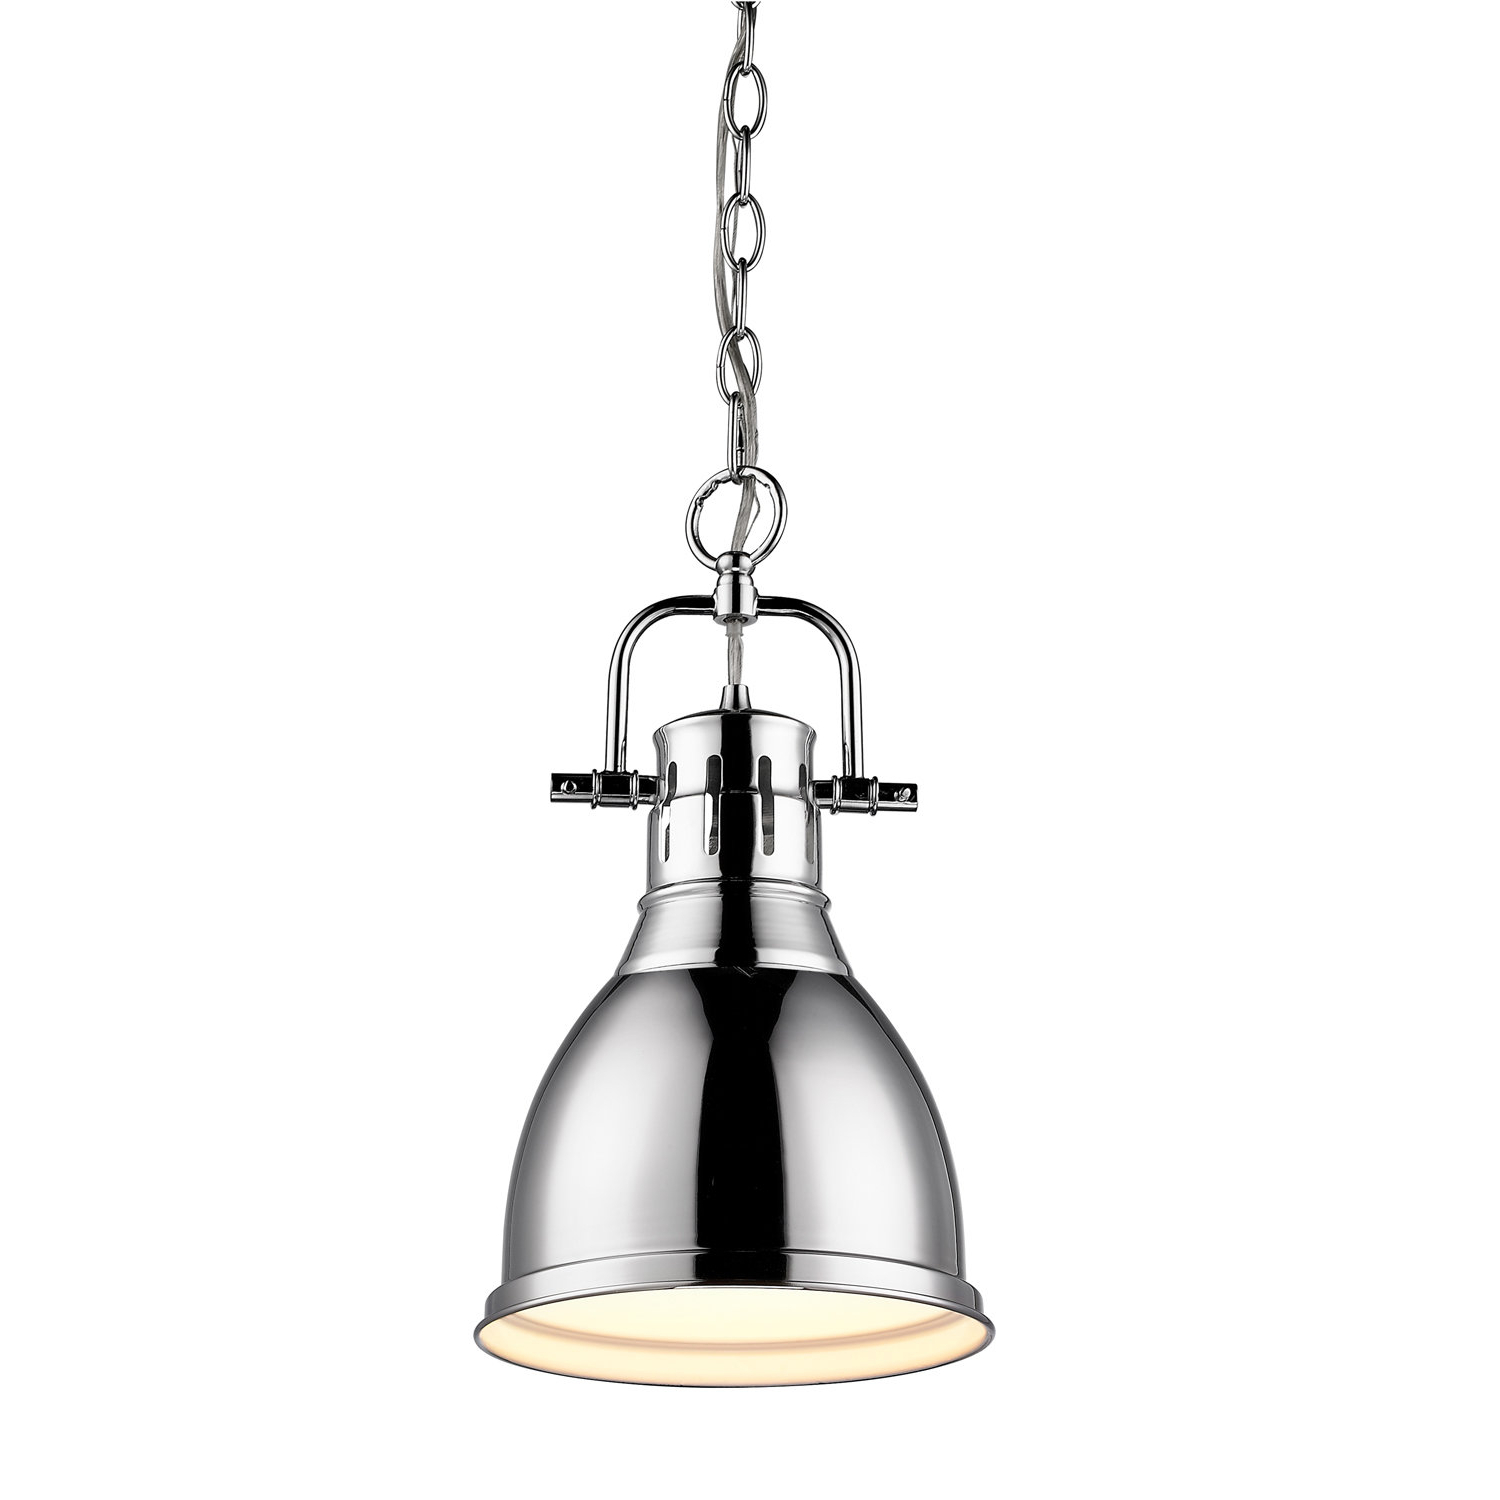 Beachcrest Home Bowdoinham 1 Light Single Dome Pendant With Most Current Sussex 1 Light Single Geometric Pendants (View 7 of 20)